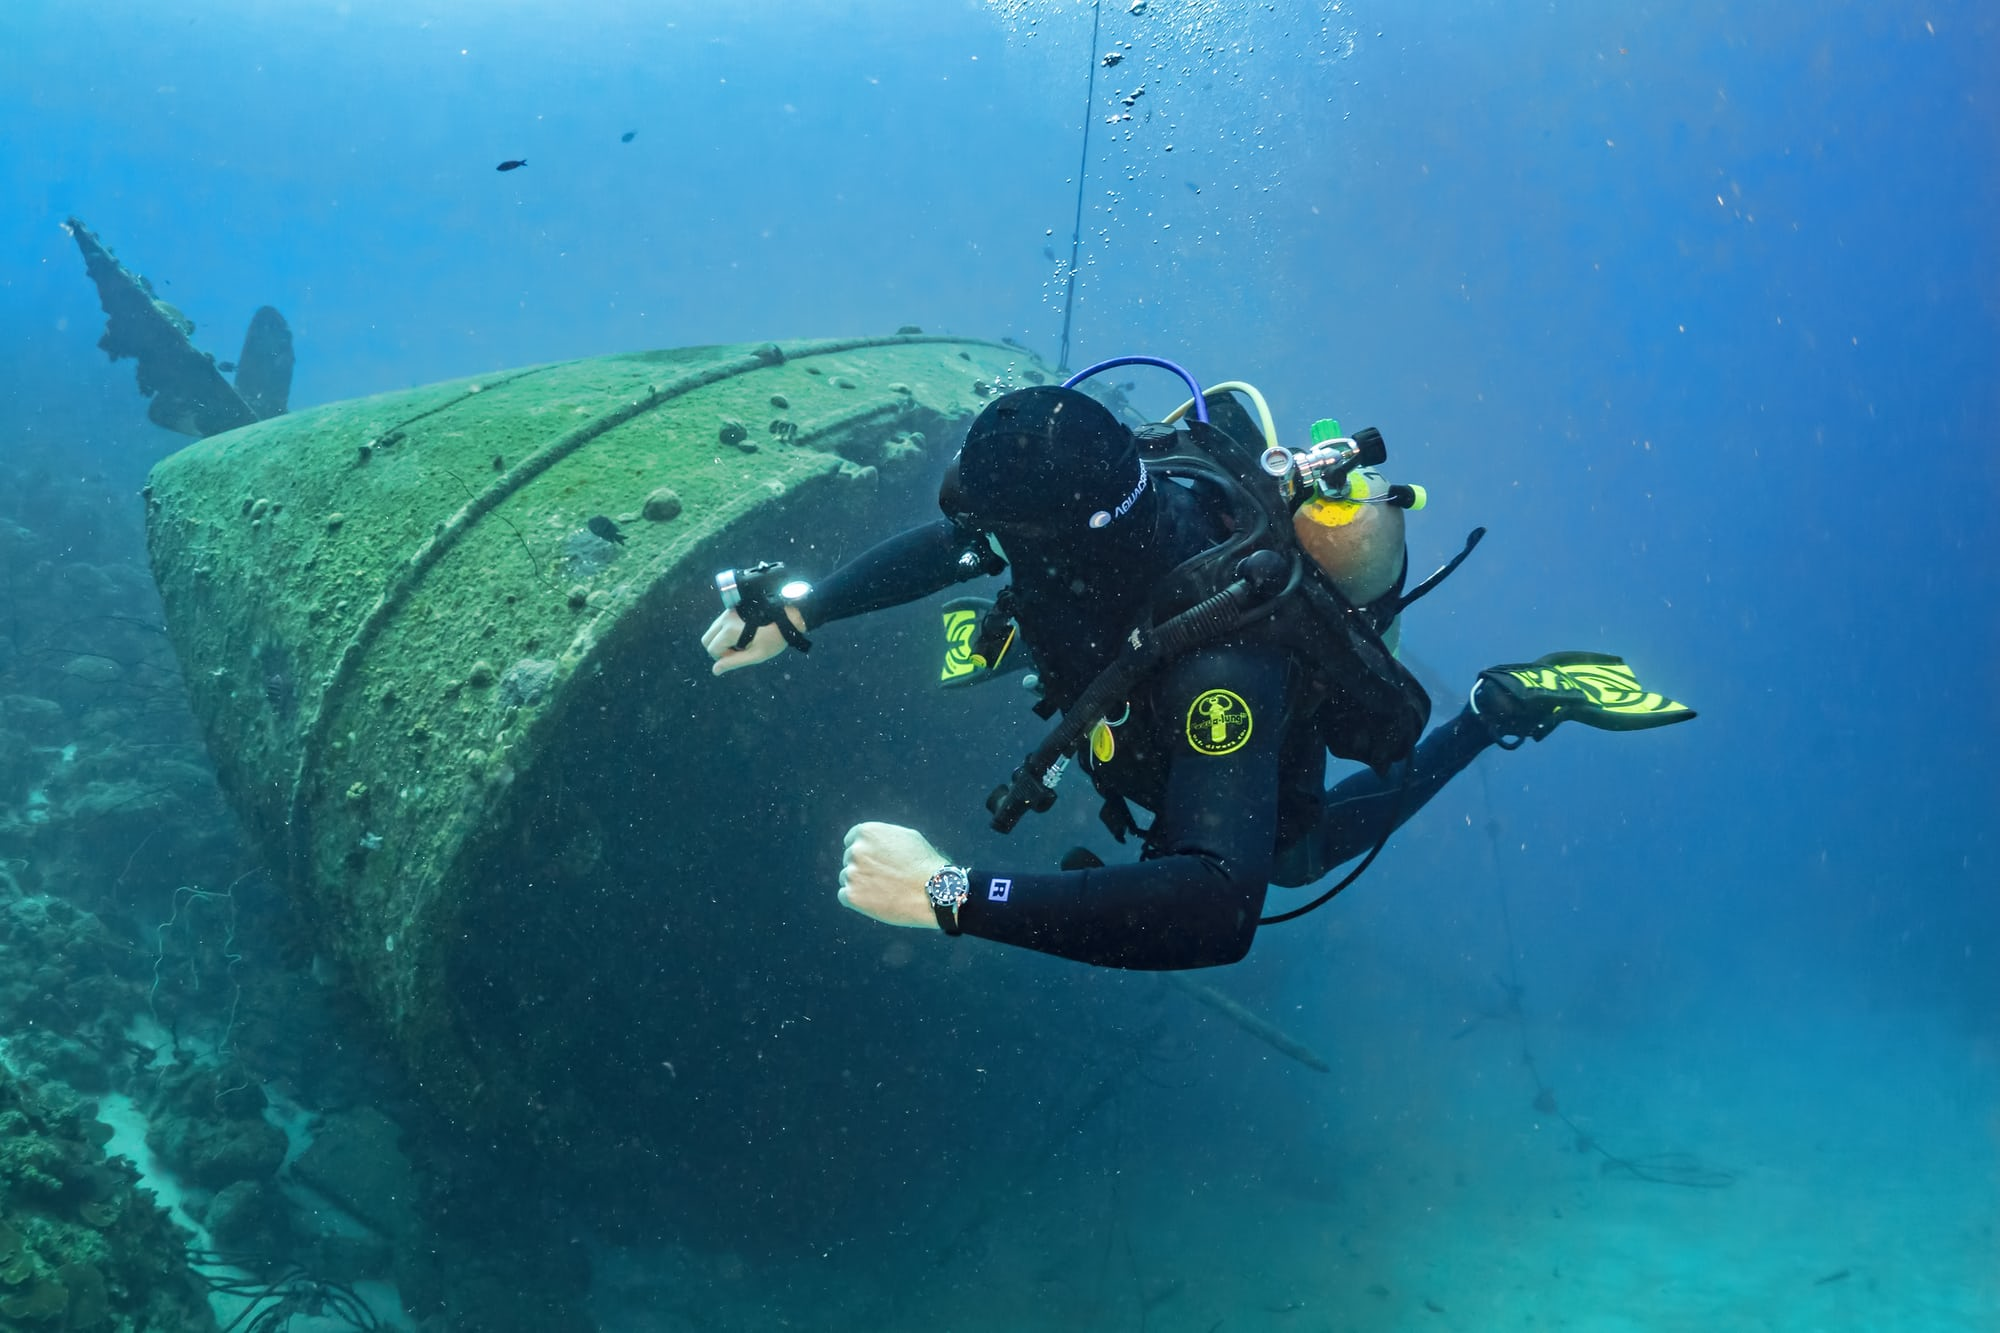 In-Depth: Diving With The Omega Seamaster Professional 300M SM300 pro UW 6